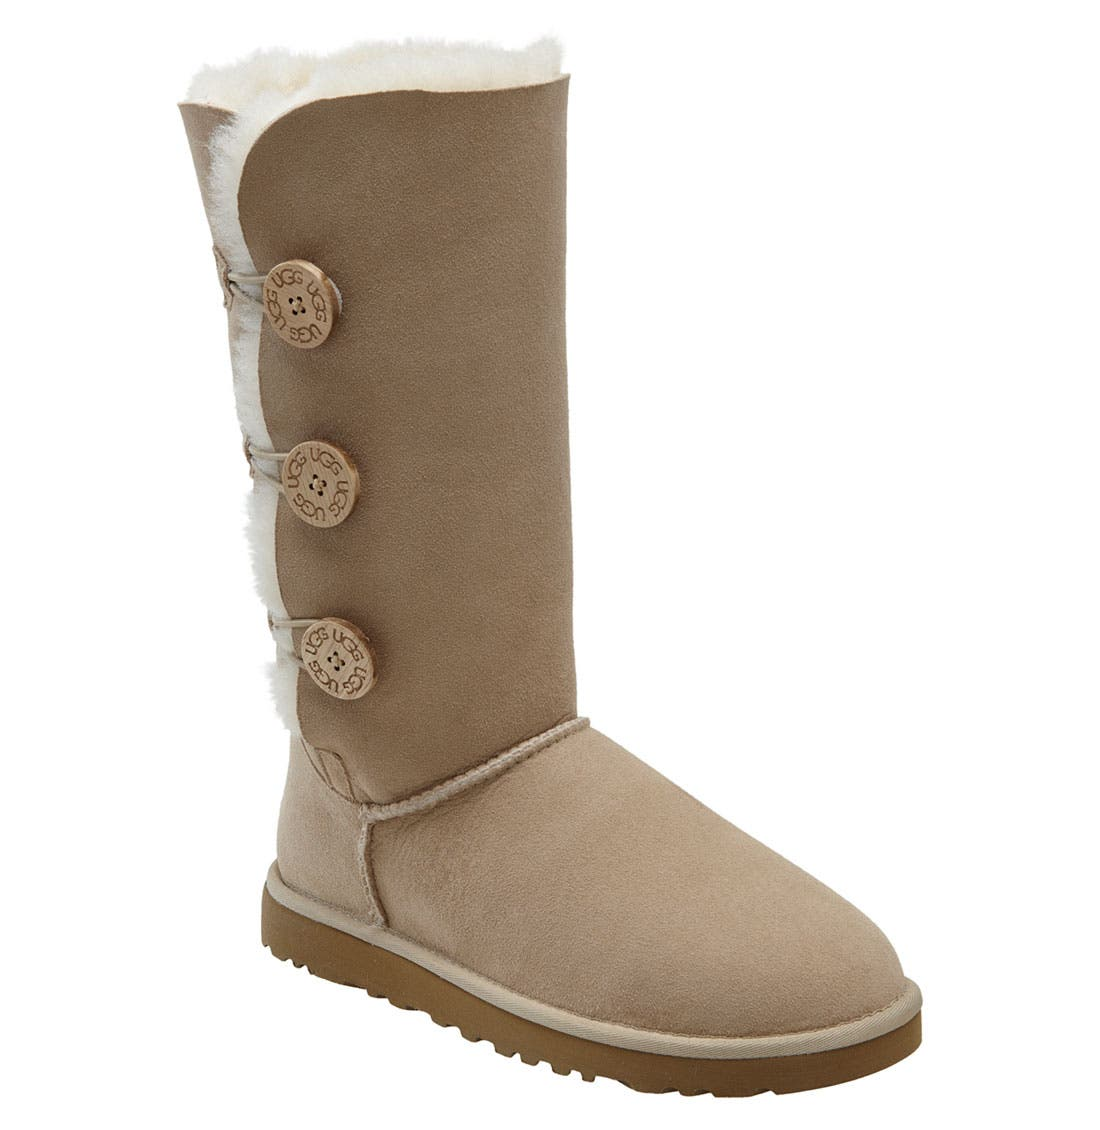 Main Image - UGG® 'Bailey Button Triplet' Boot (Women)